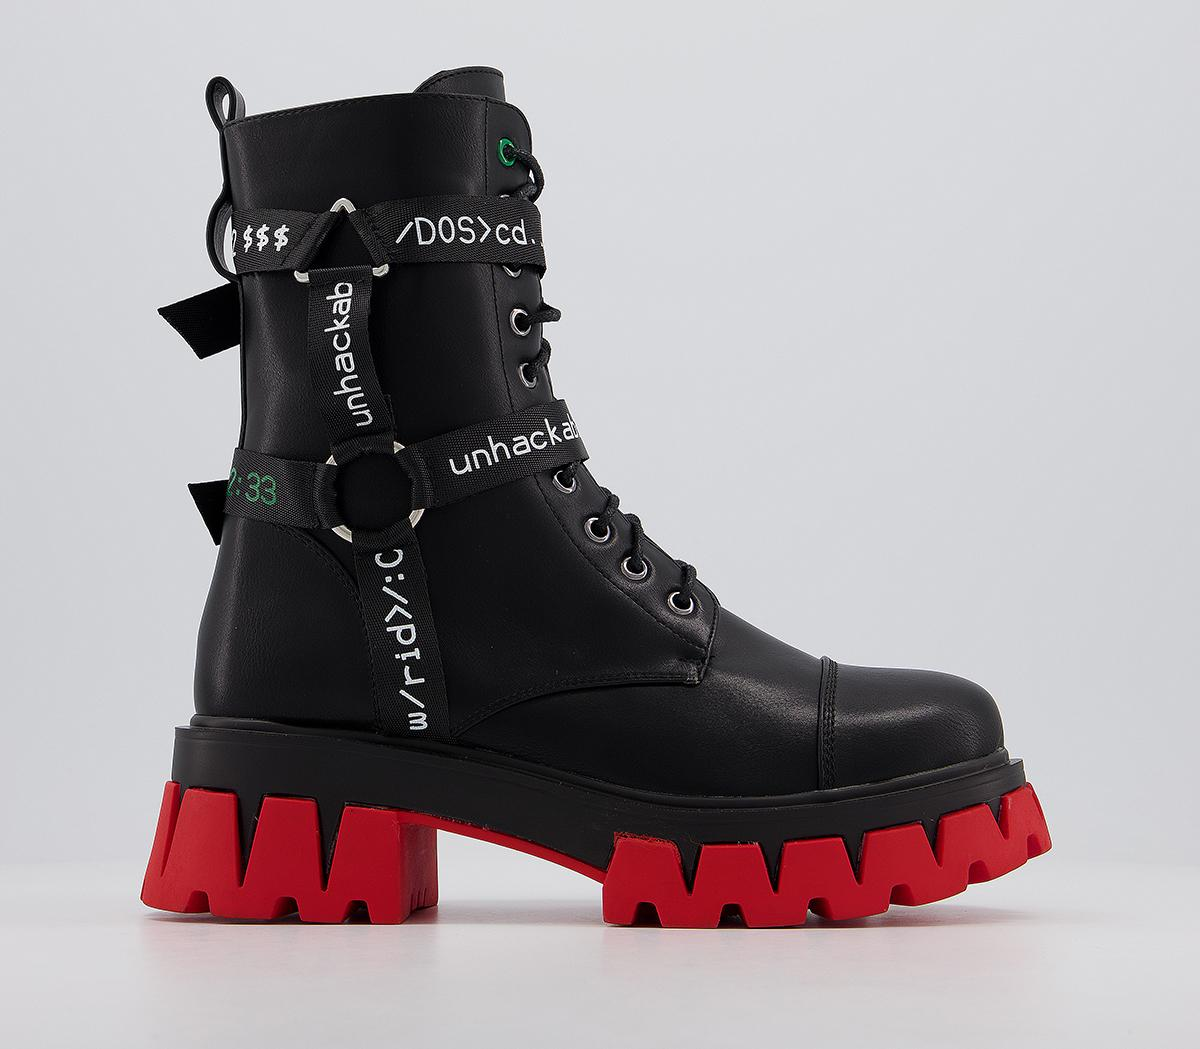 Koi Footwear Gorgon Chunky Boots Black Red Ankle Boots We're the trendmakers in fashion footwear bringing you you are our inspiration and we aim to create the footwear you want and love. gorgon chunky boots